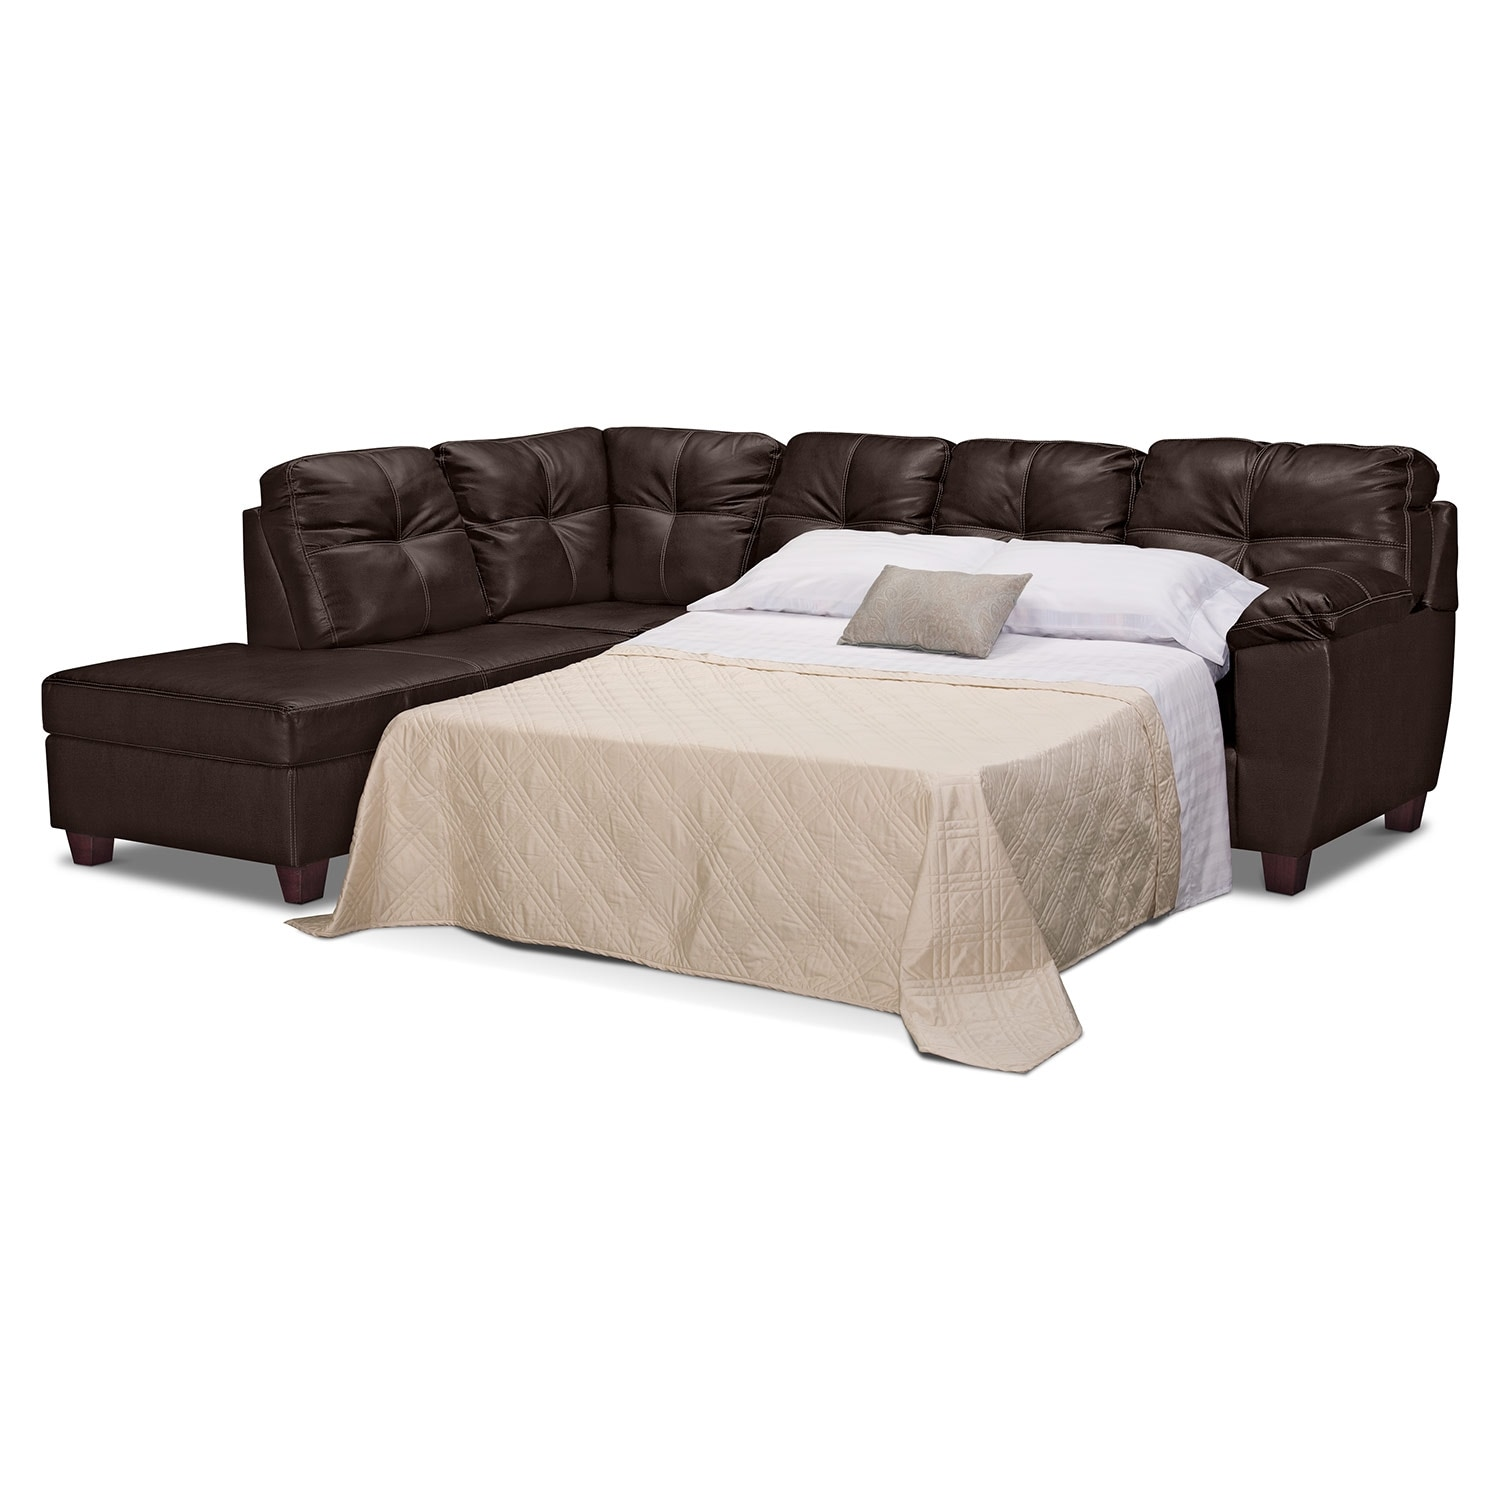 Ricardo 2 piece innerspring sleeper sectional with left for Brown sectional sofa with chaise